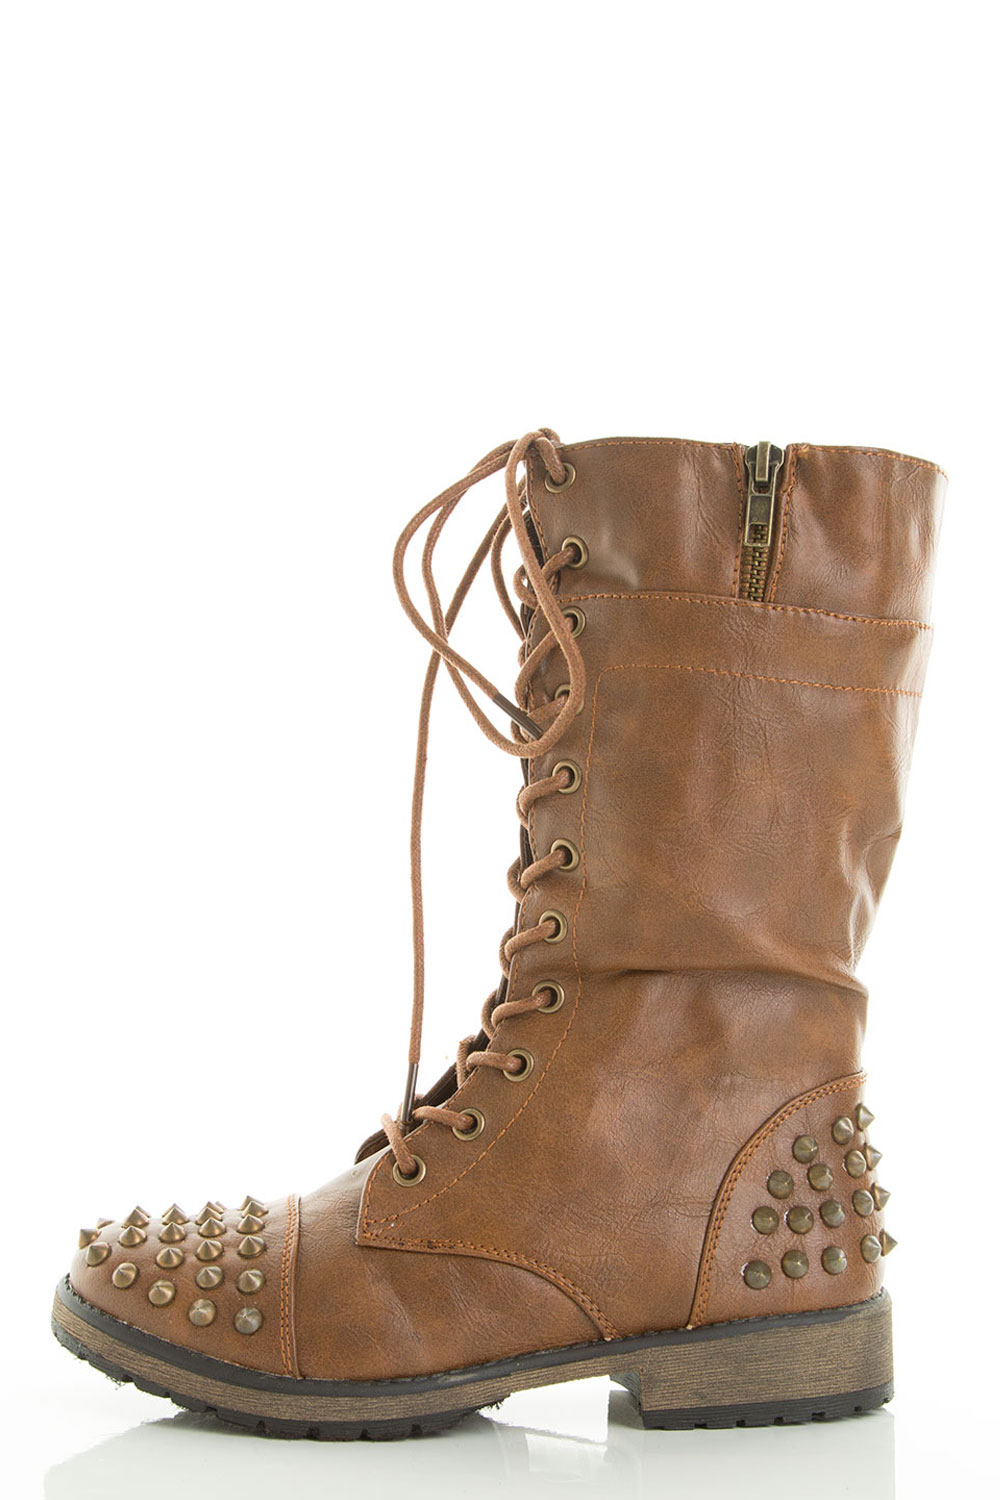 Spike Stud Lace Up Military Low Flat Heel Combat Ankle Boots